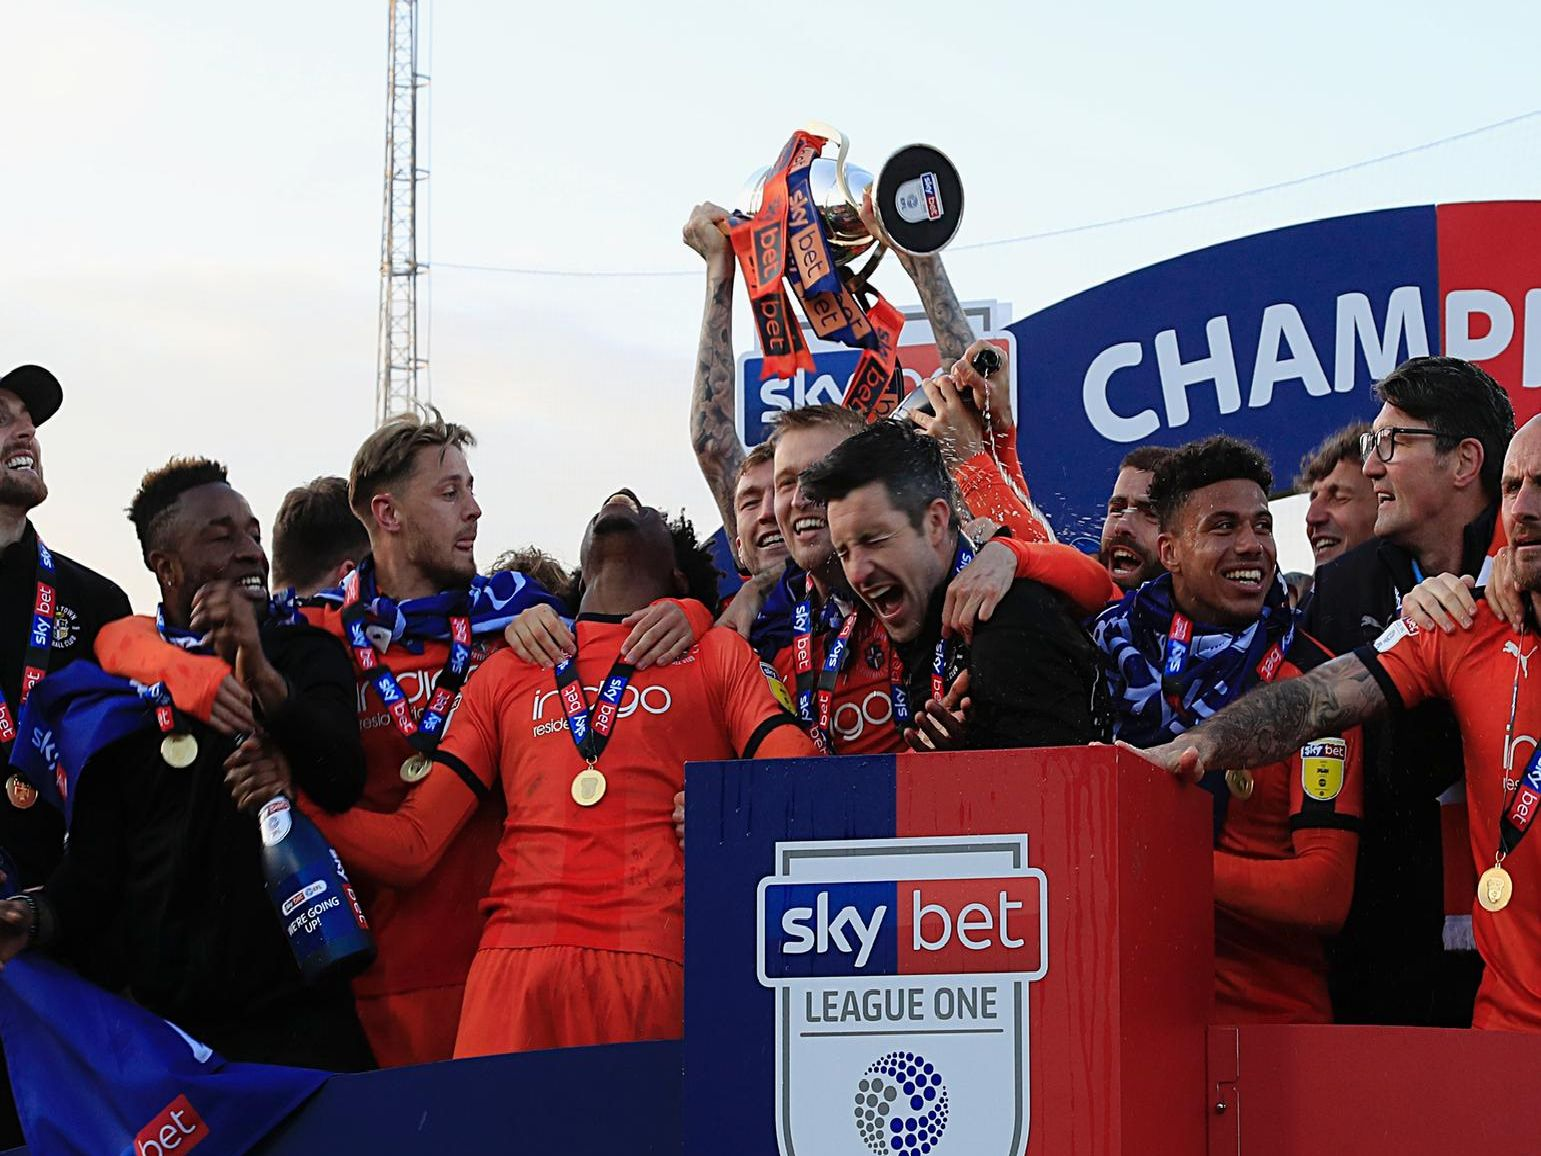 Luton celebrate winning the League One title